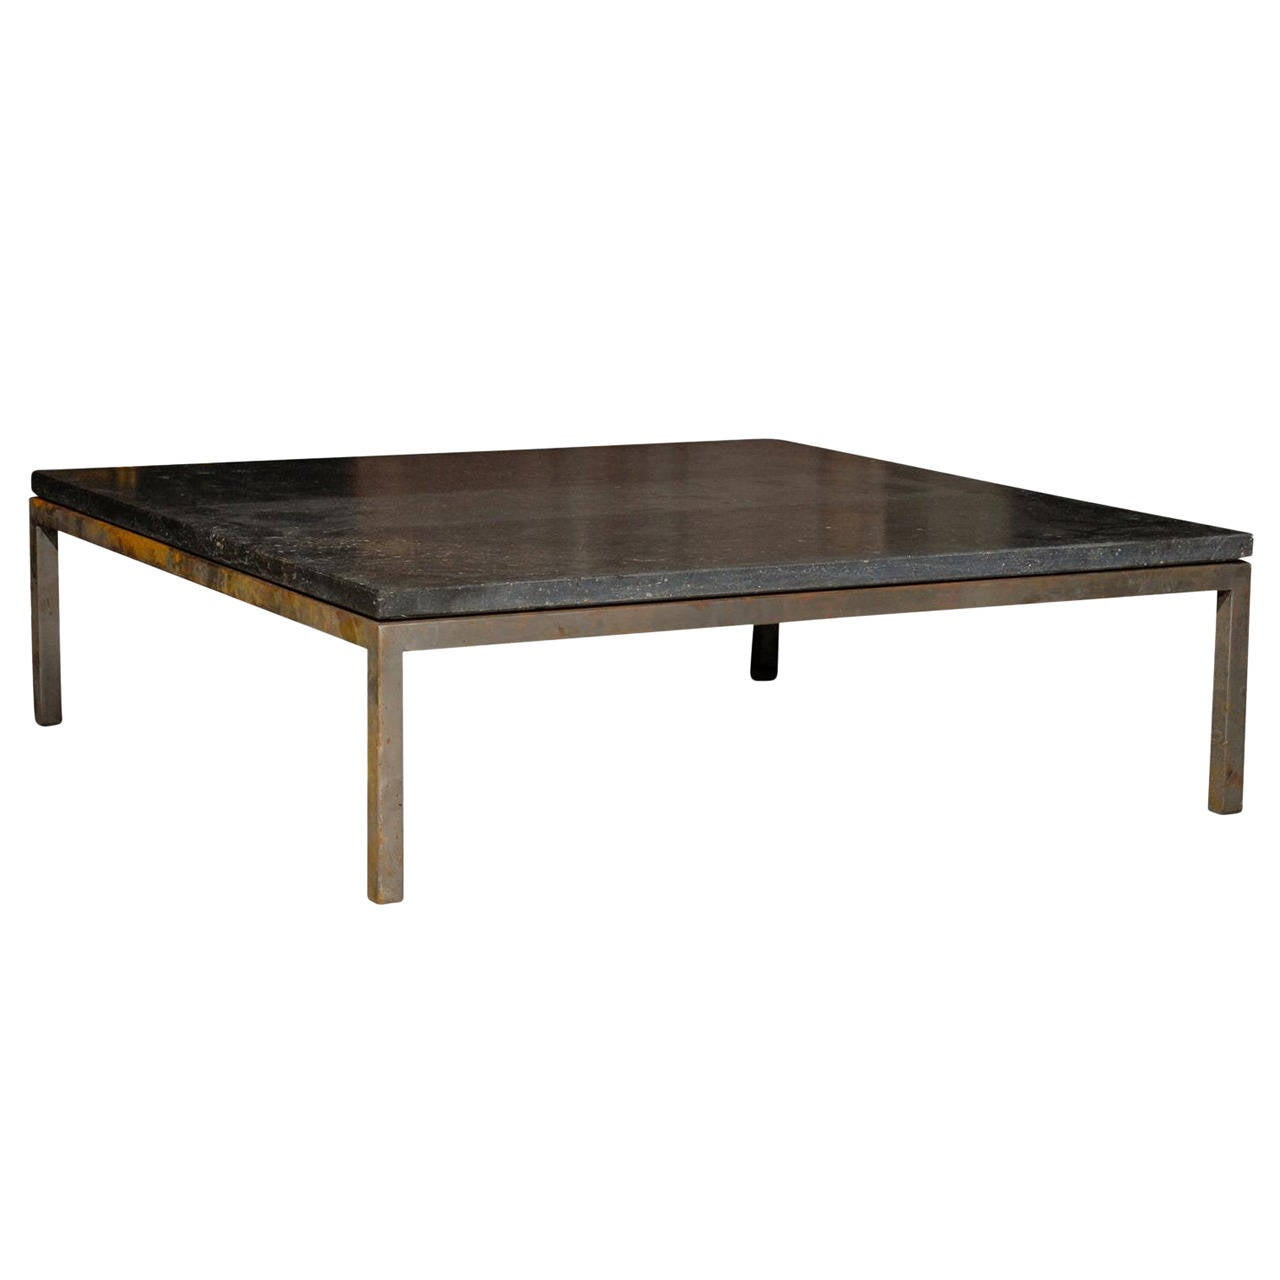 Mid Century Modern Marble Top Coffee Table: Mid-Century Square Steel Coffee Table With Black Marble